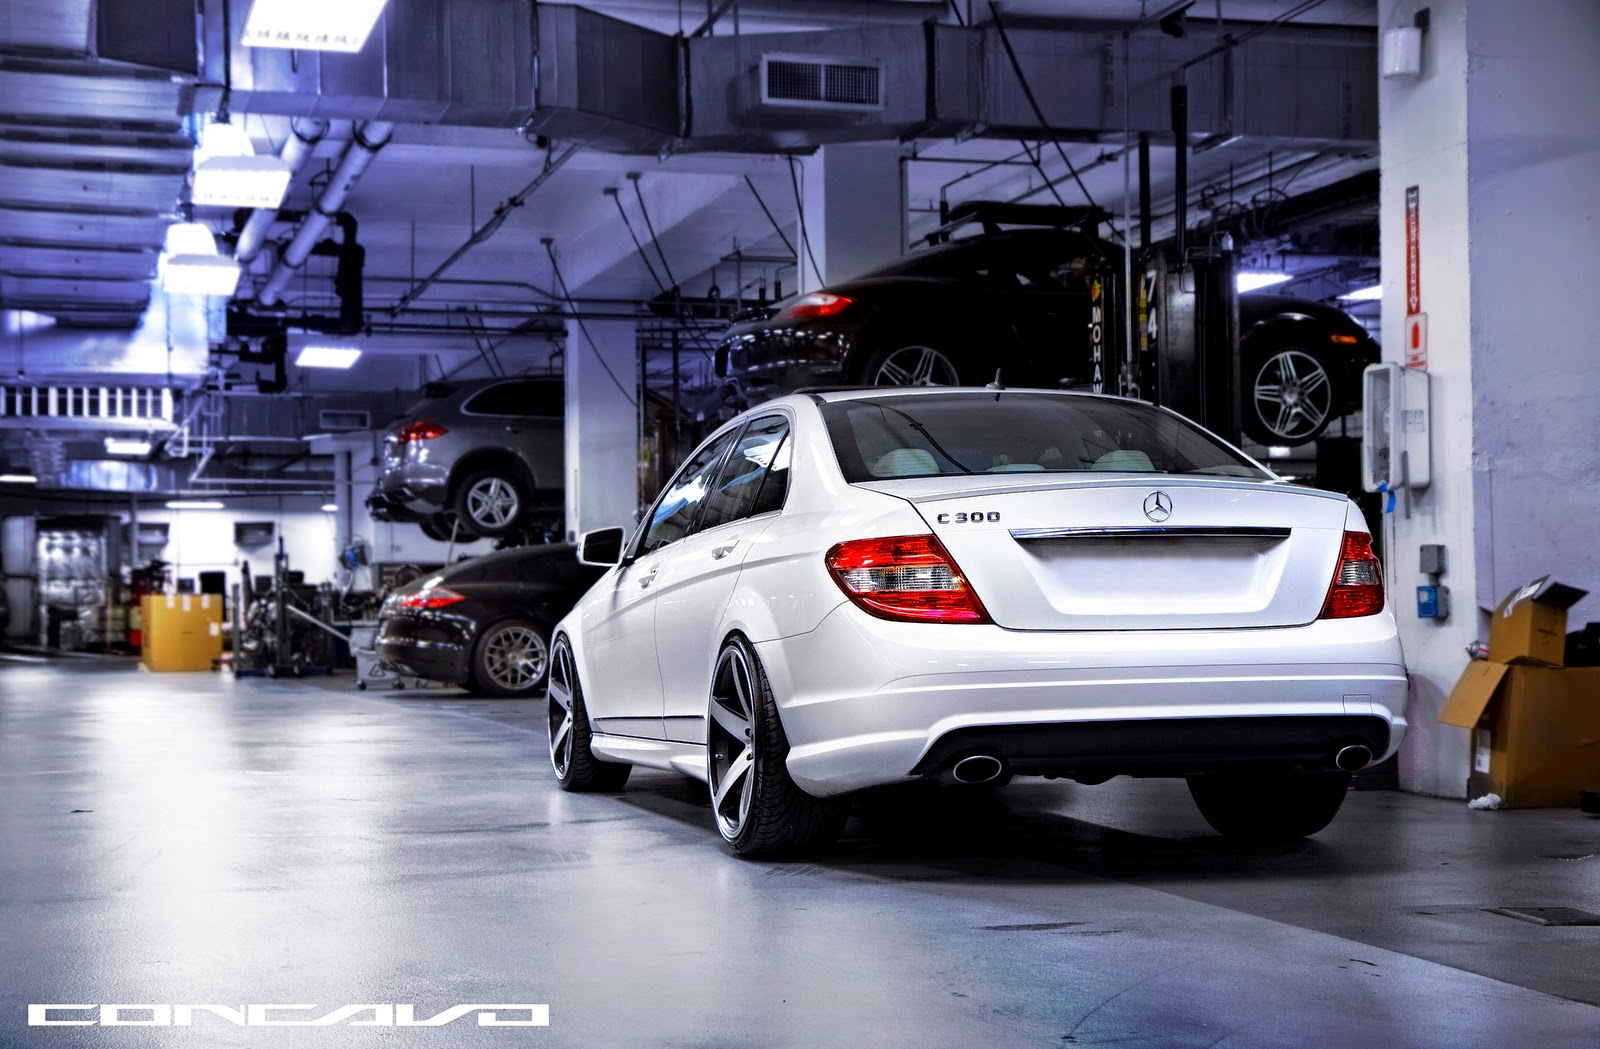 Benztuning mercedes benz w204 c300 on 20 cw 5 concavo wheels for Mercedes benz customized